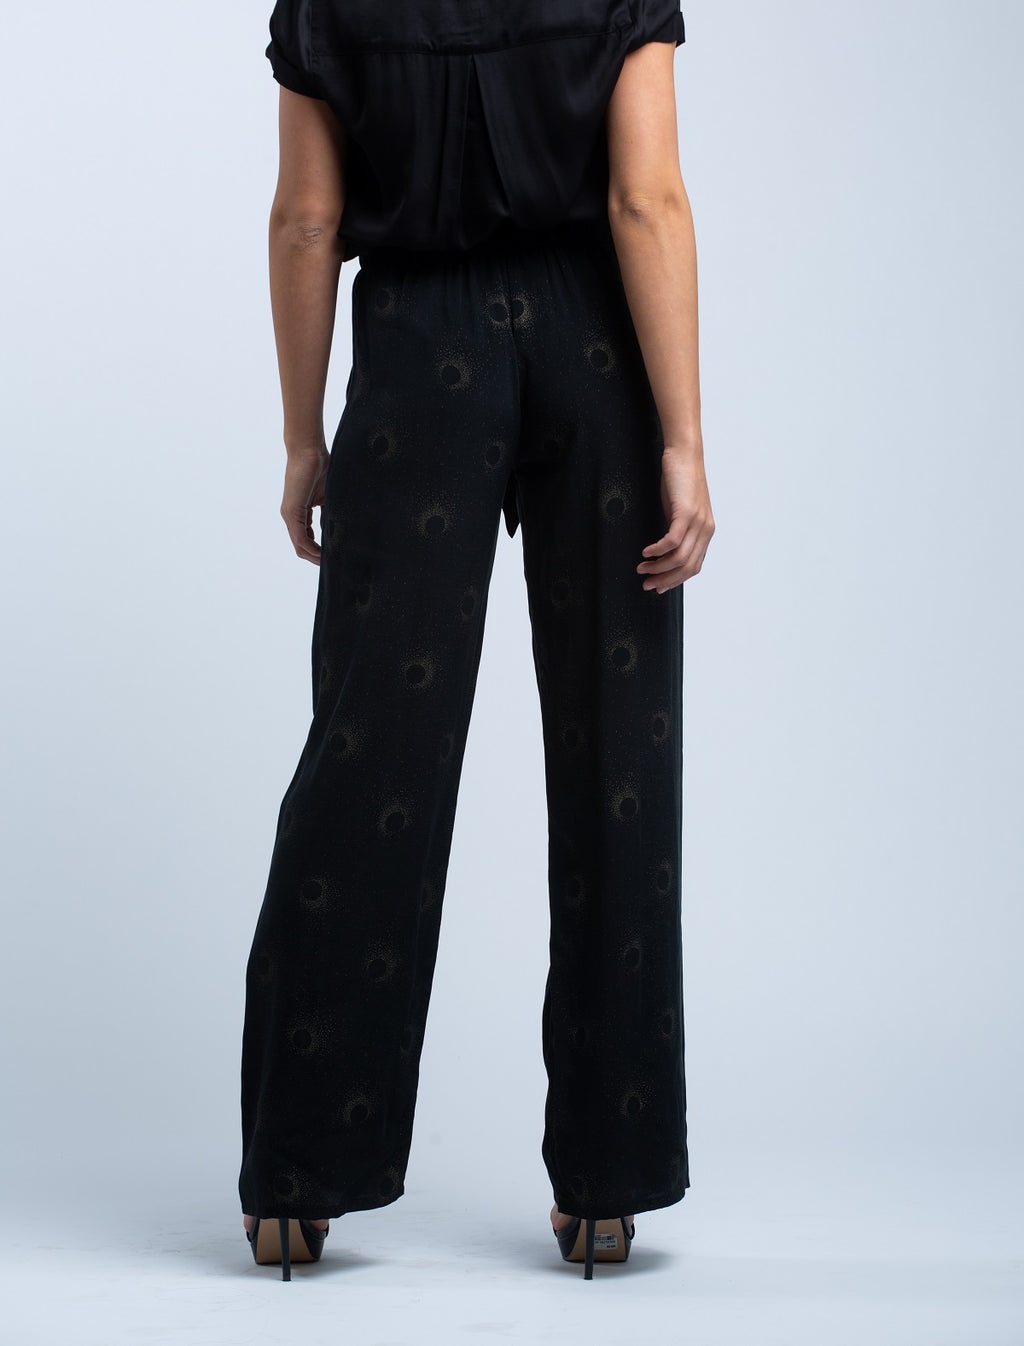 STILLWATER <br> The Aldridge Pant